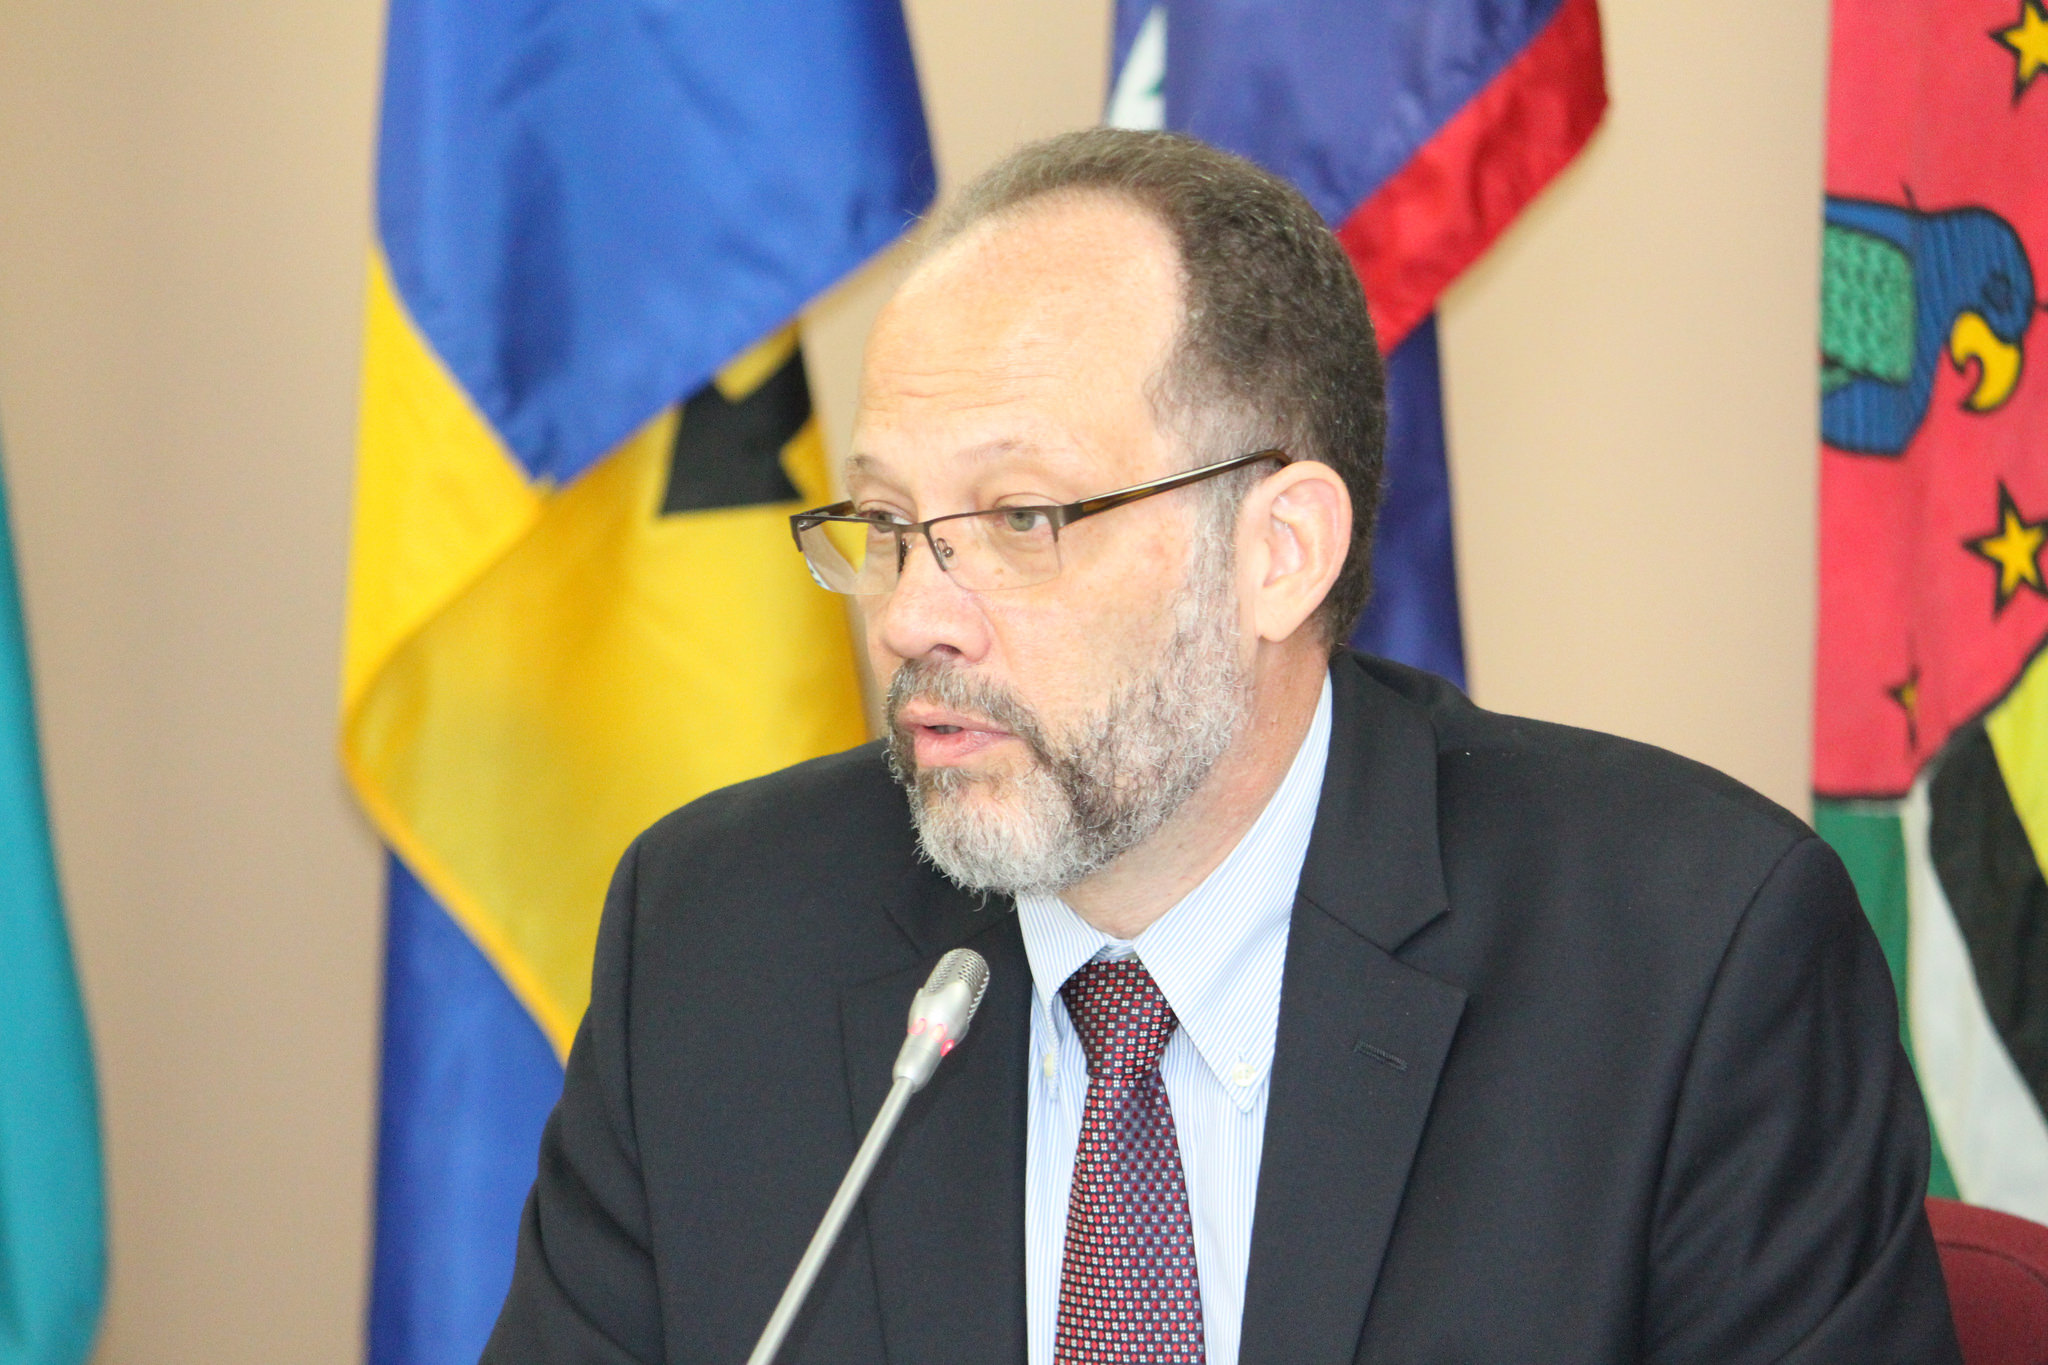 CARICOM Secretary-General, Ambassador Irwin LaRocque delivering welcome remarks